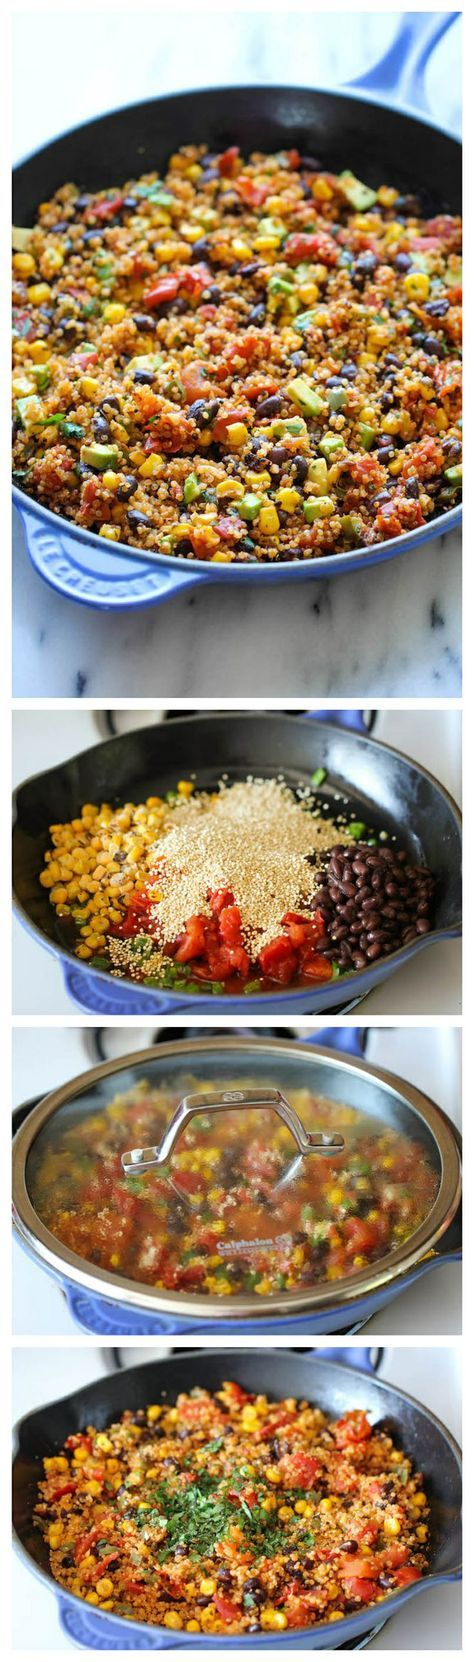 One Pan Mexican Quinoa - Wonderfully light, healthy and nutritious. And it's so easy to make - even the quinoa is cooked right in the pan! I'd prob still add group turkey to it.